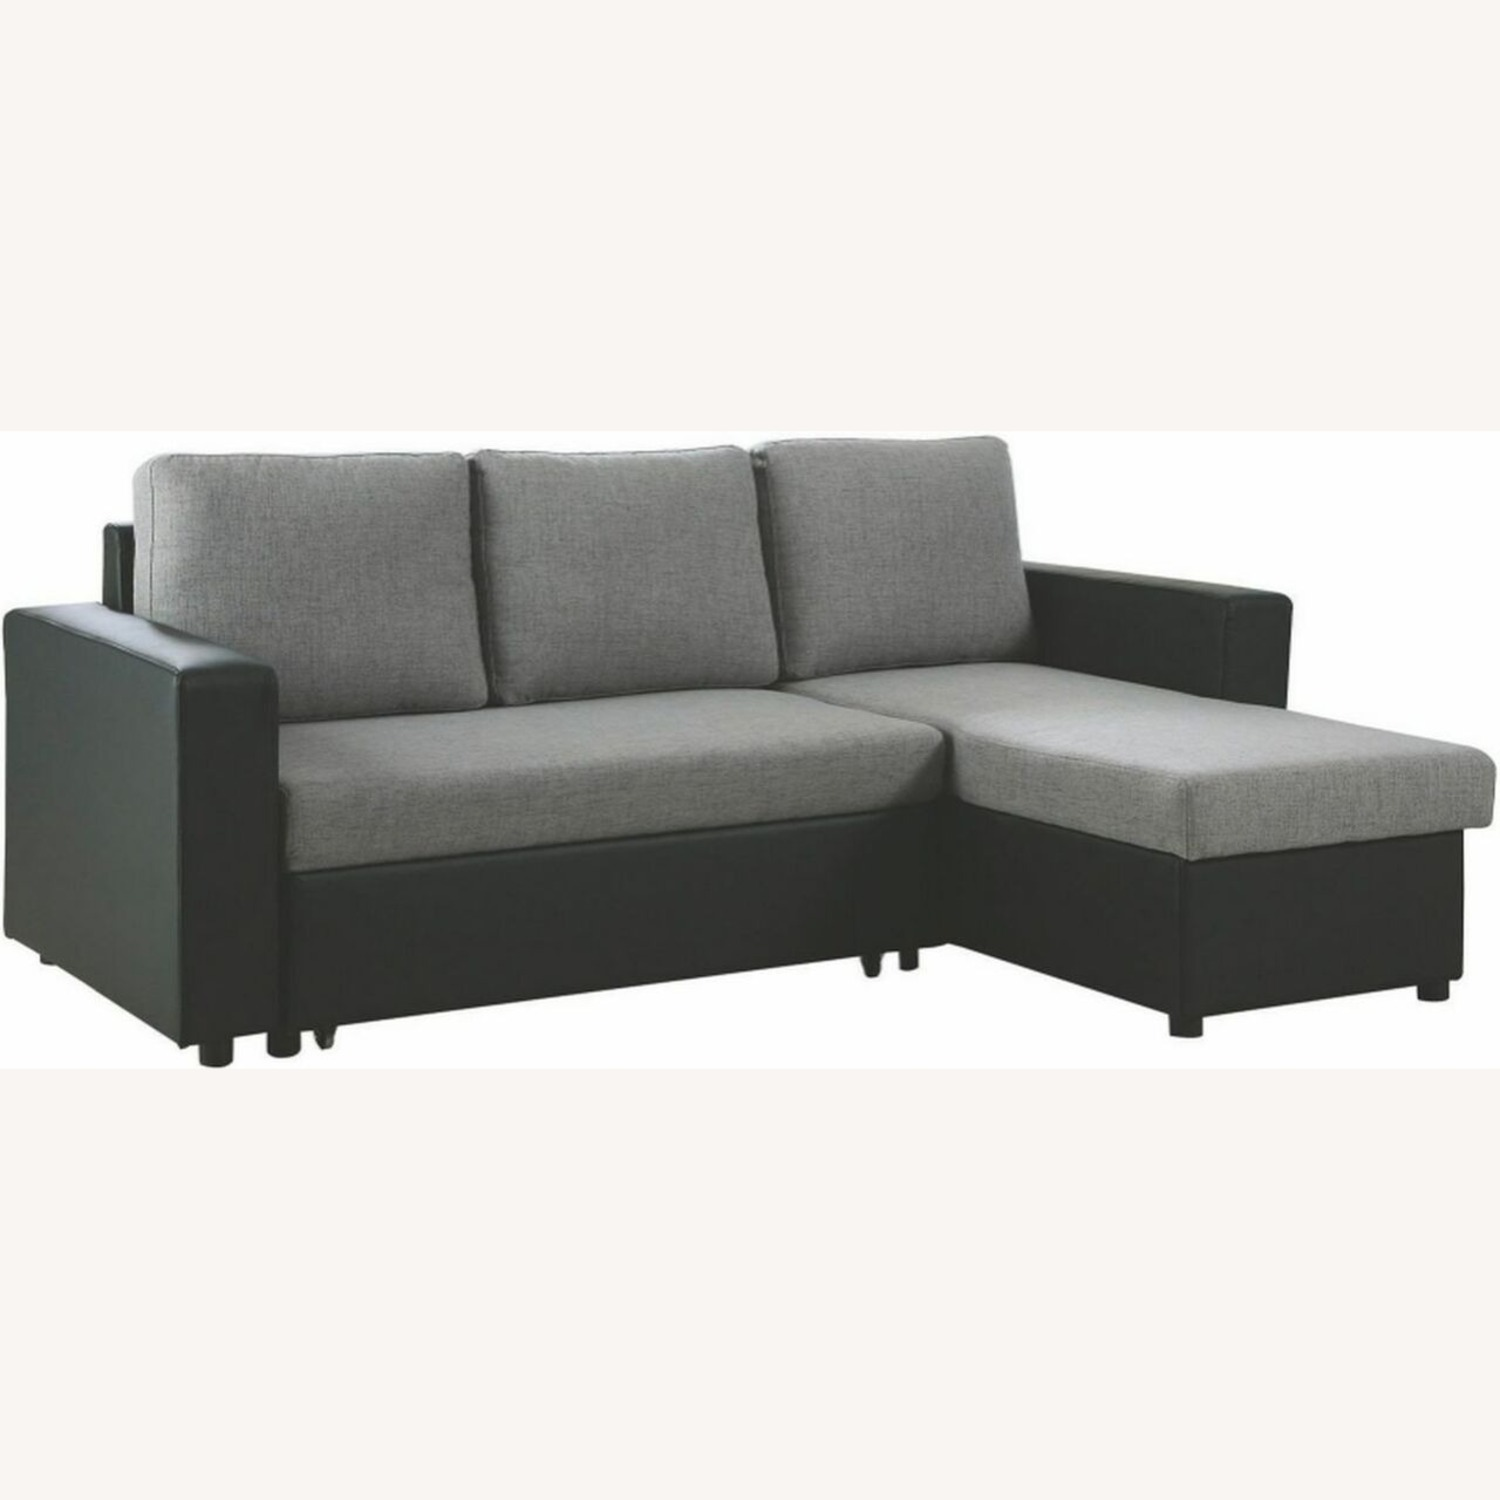 2-Piece Sectional In Grey Linen-Like Fabric - image-0